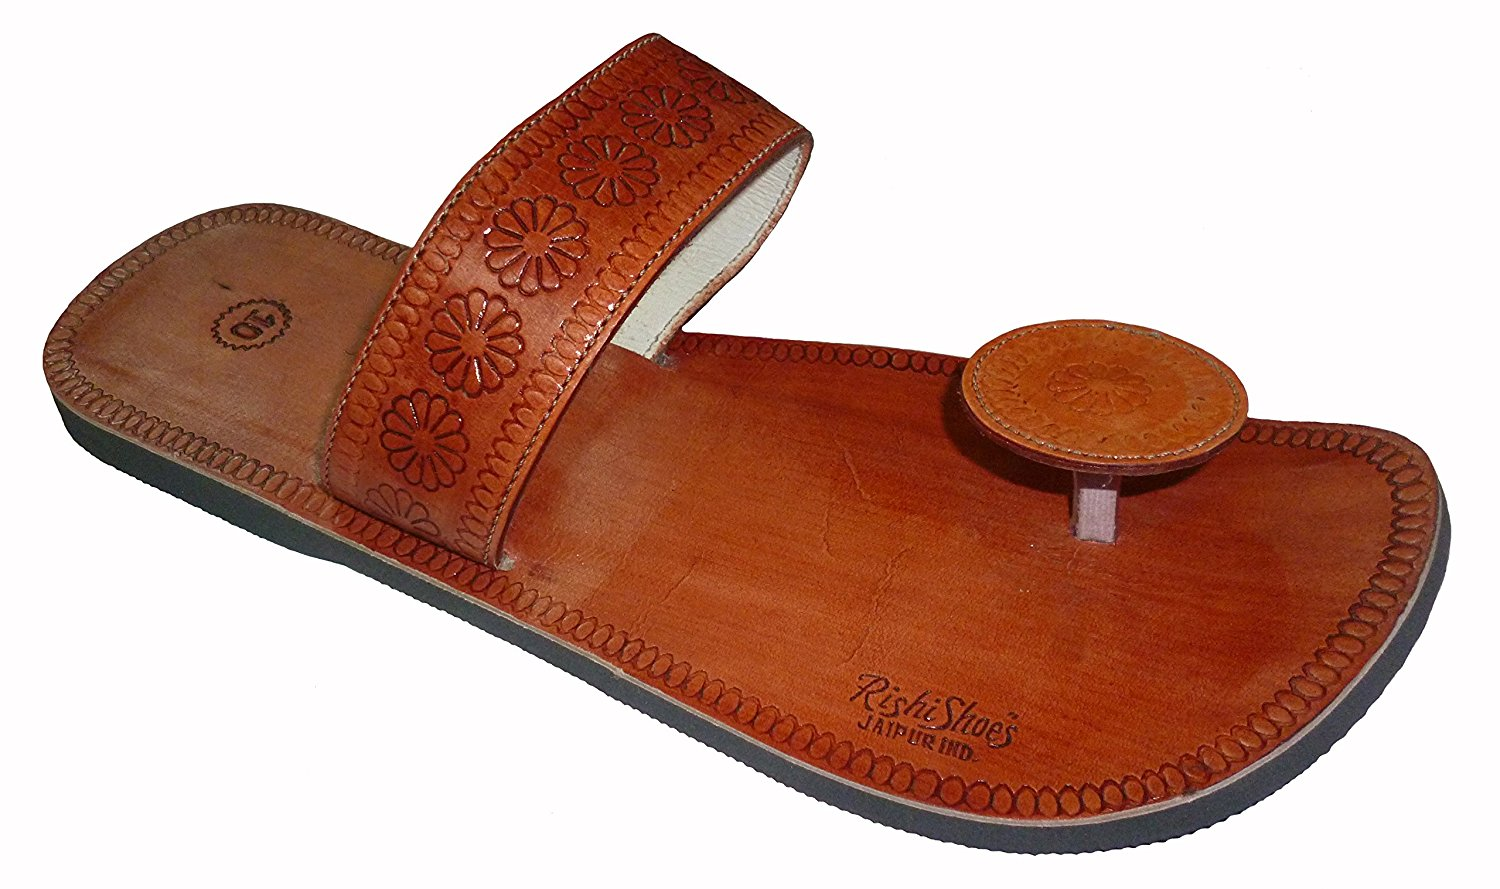 0551d06a1 Get Quotations · Handcrafted Luxury Men s Rajasthani Leather Slippers